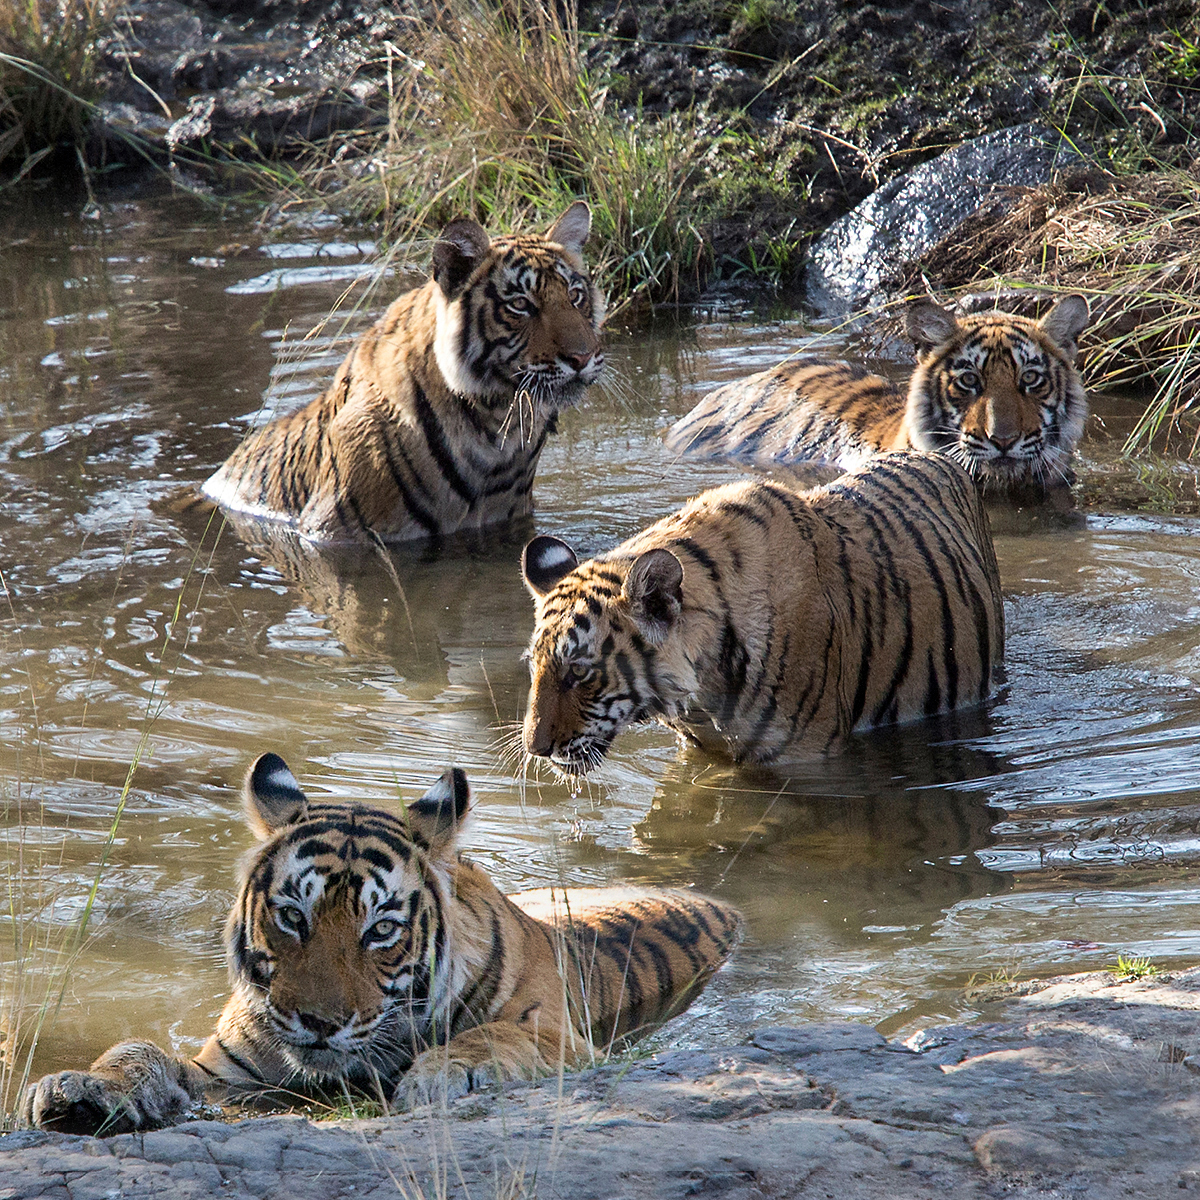 First 'Ranthambore Watering Hole' by Tony Oliver